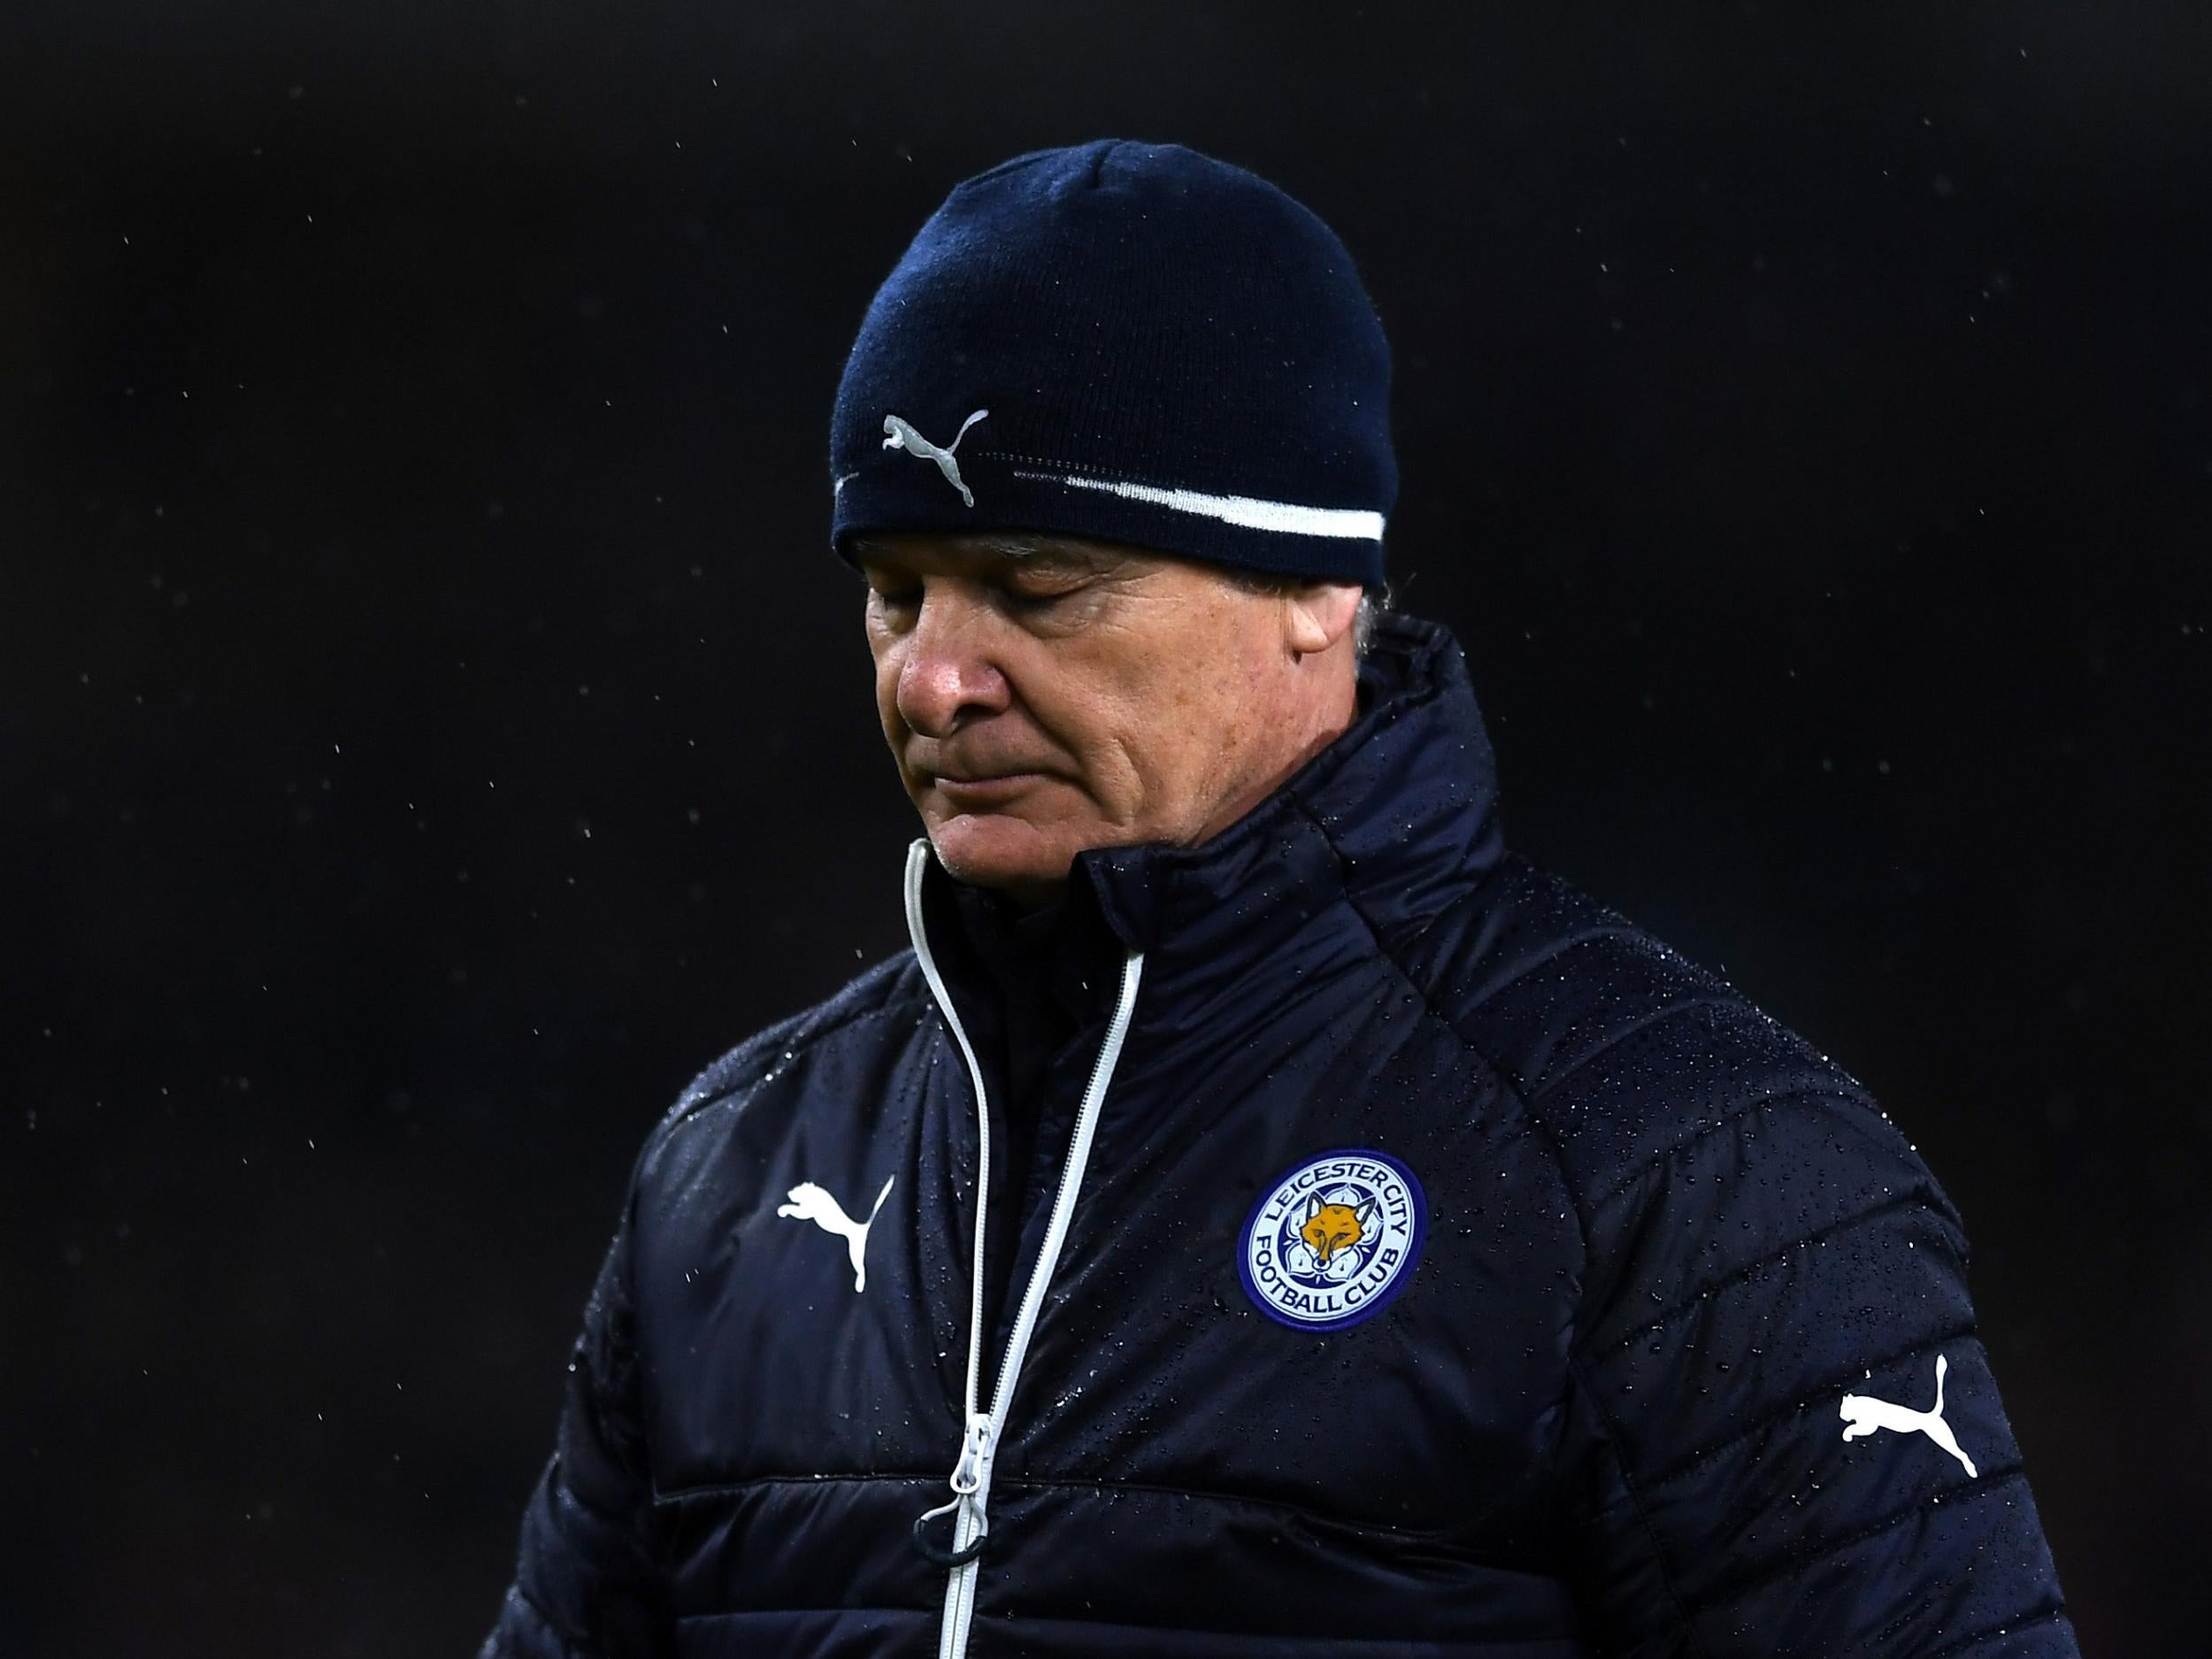 independent.co.uk - The Ranieri sacking: a despicable act of felony which shows how football has lost touch with its soul